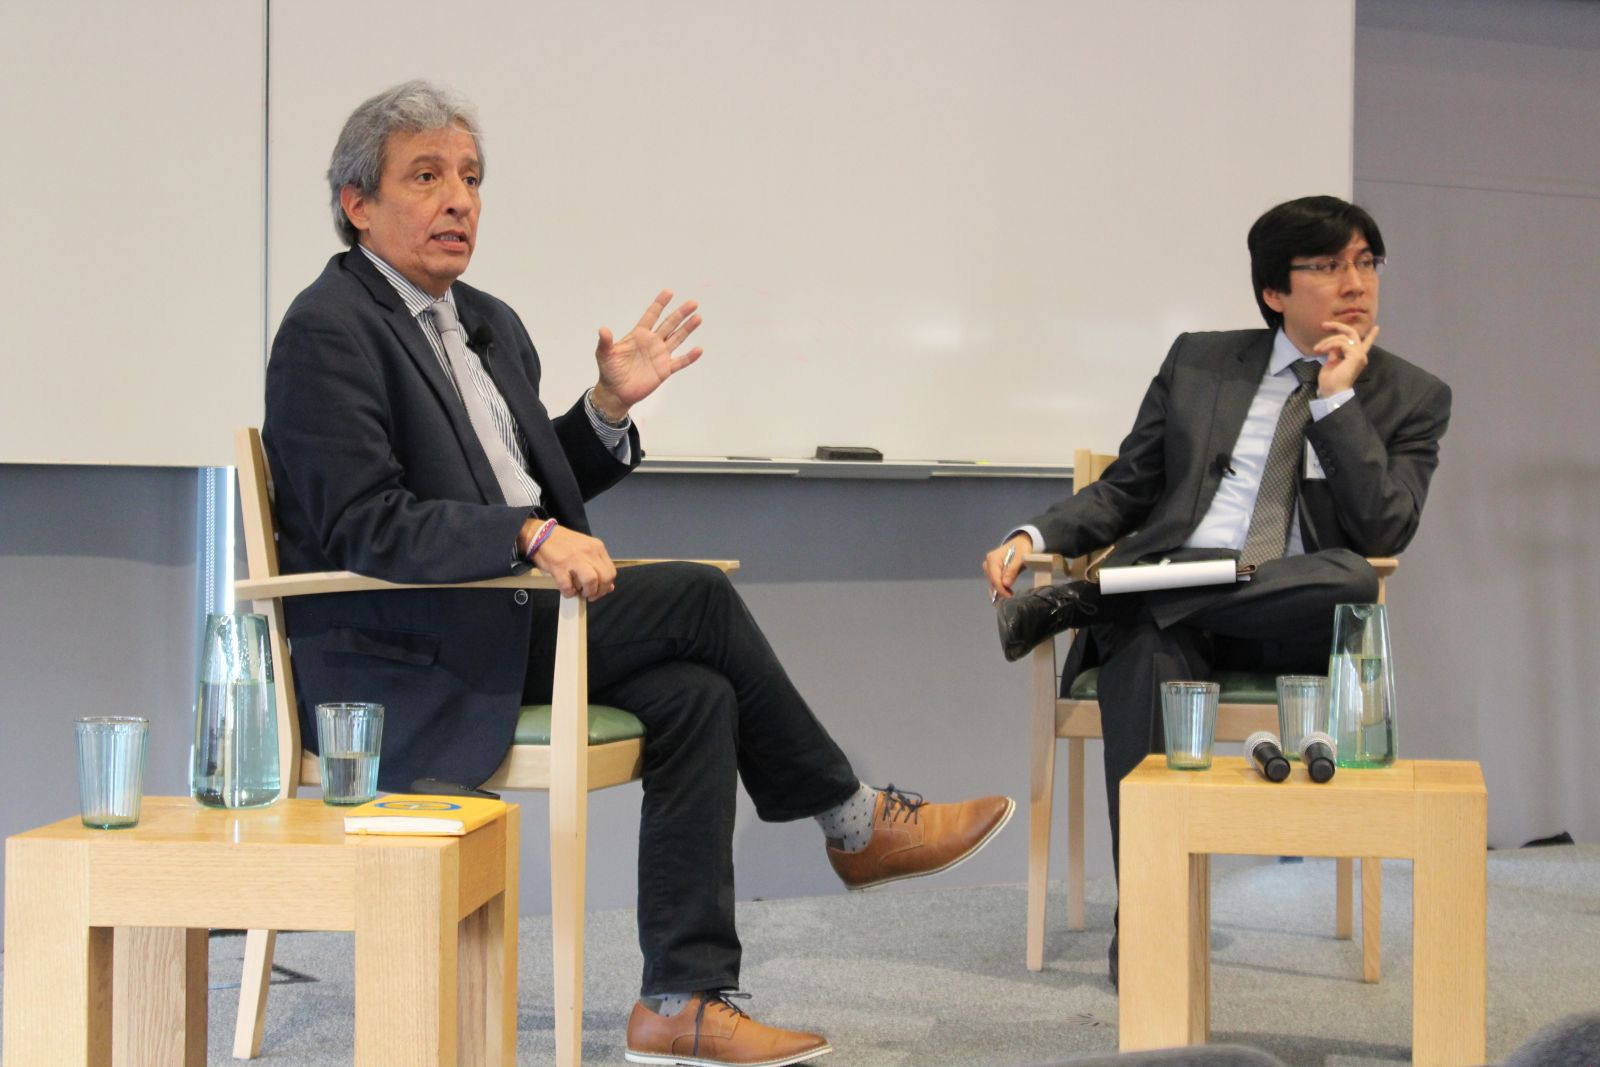 Conversation with a Global Leader   Manuel Pulgar-Vidal, Global Climate and Energy Program Leader at the World Wildlife Fund and former President of the United Nations Climate Change Conference COP20, in a conversation led by Diego Manya (MEM '18).